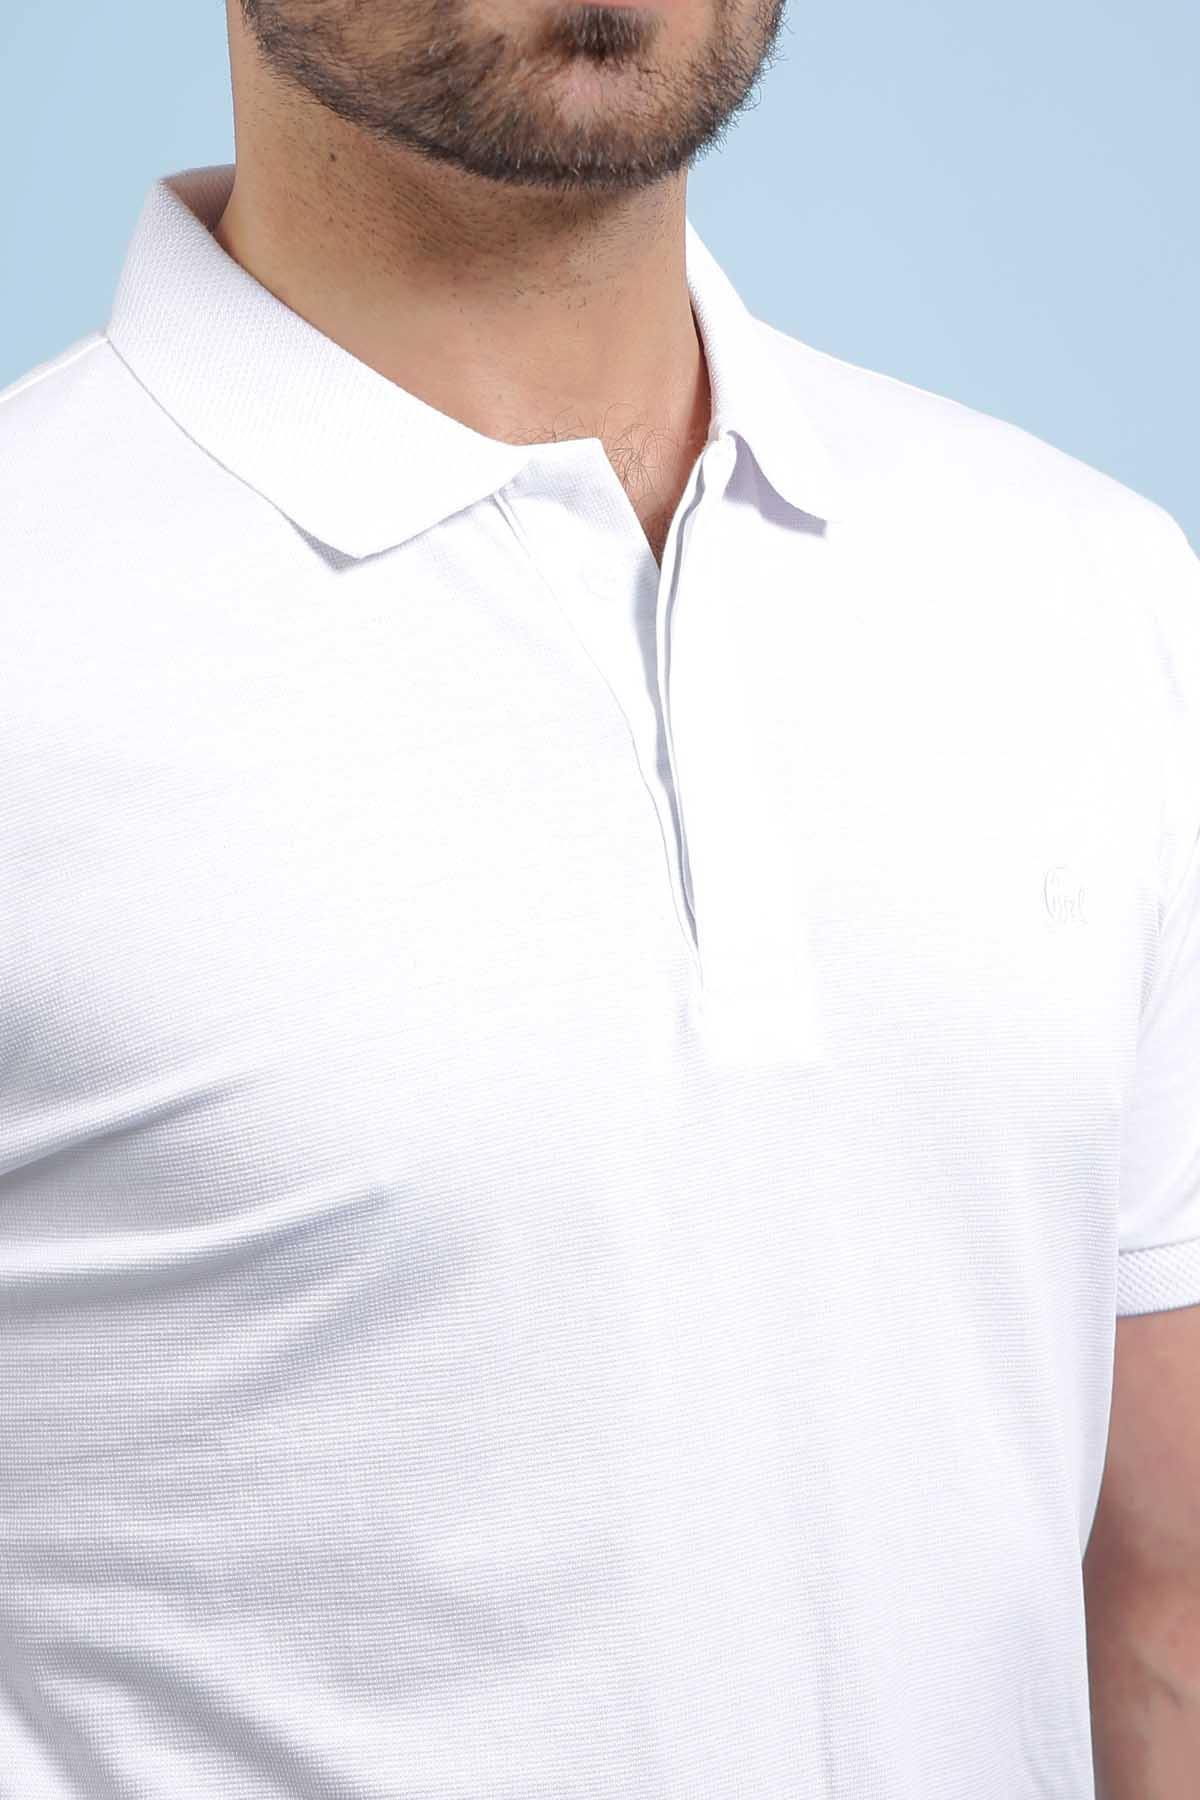 POLO SHIRT WHITE - Charcoal Clothing